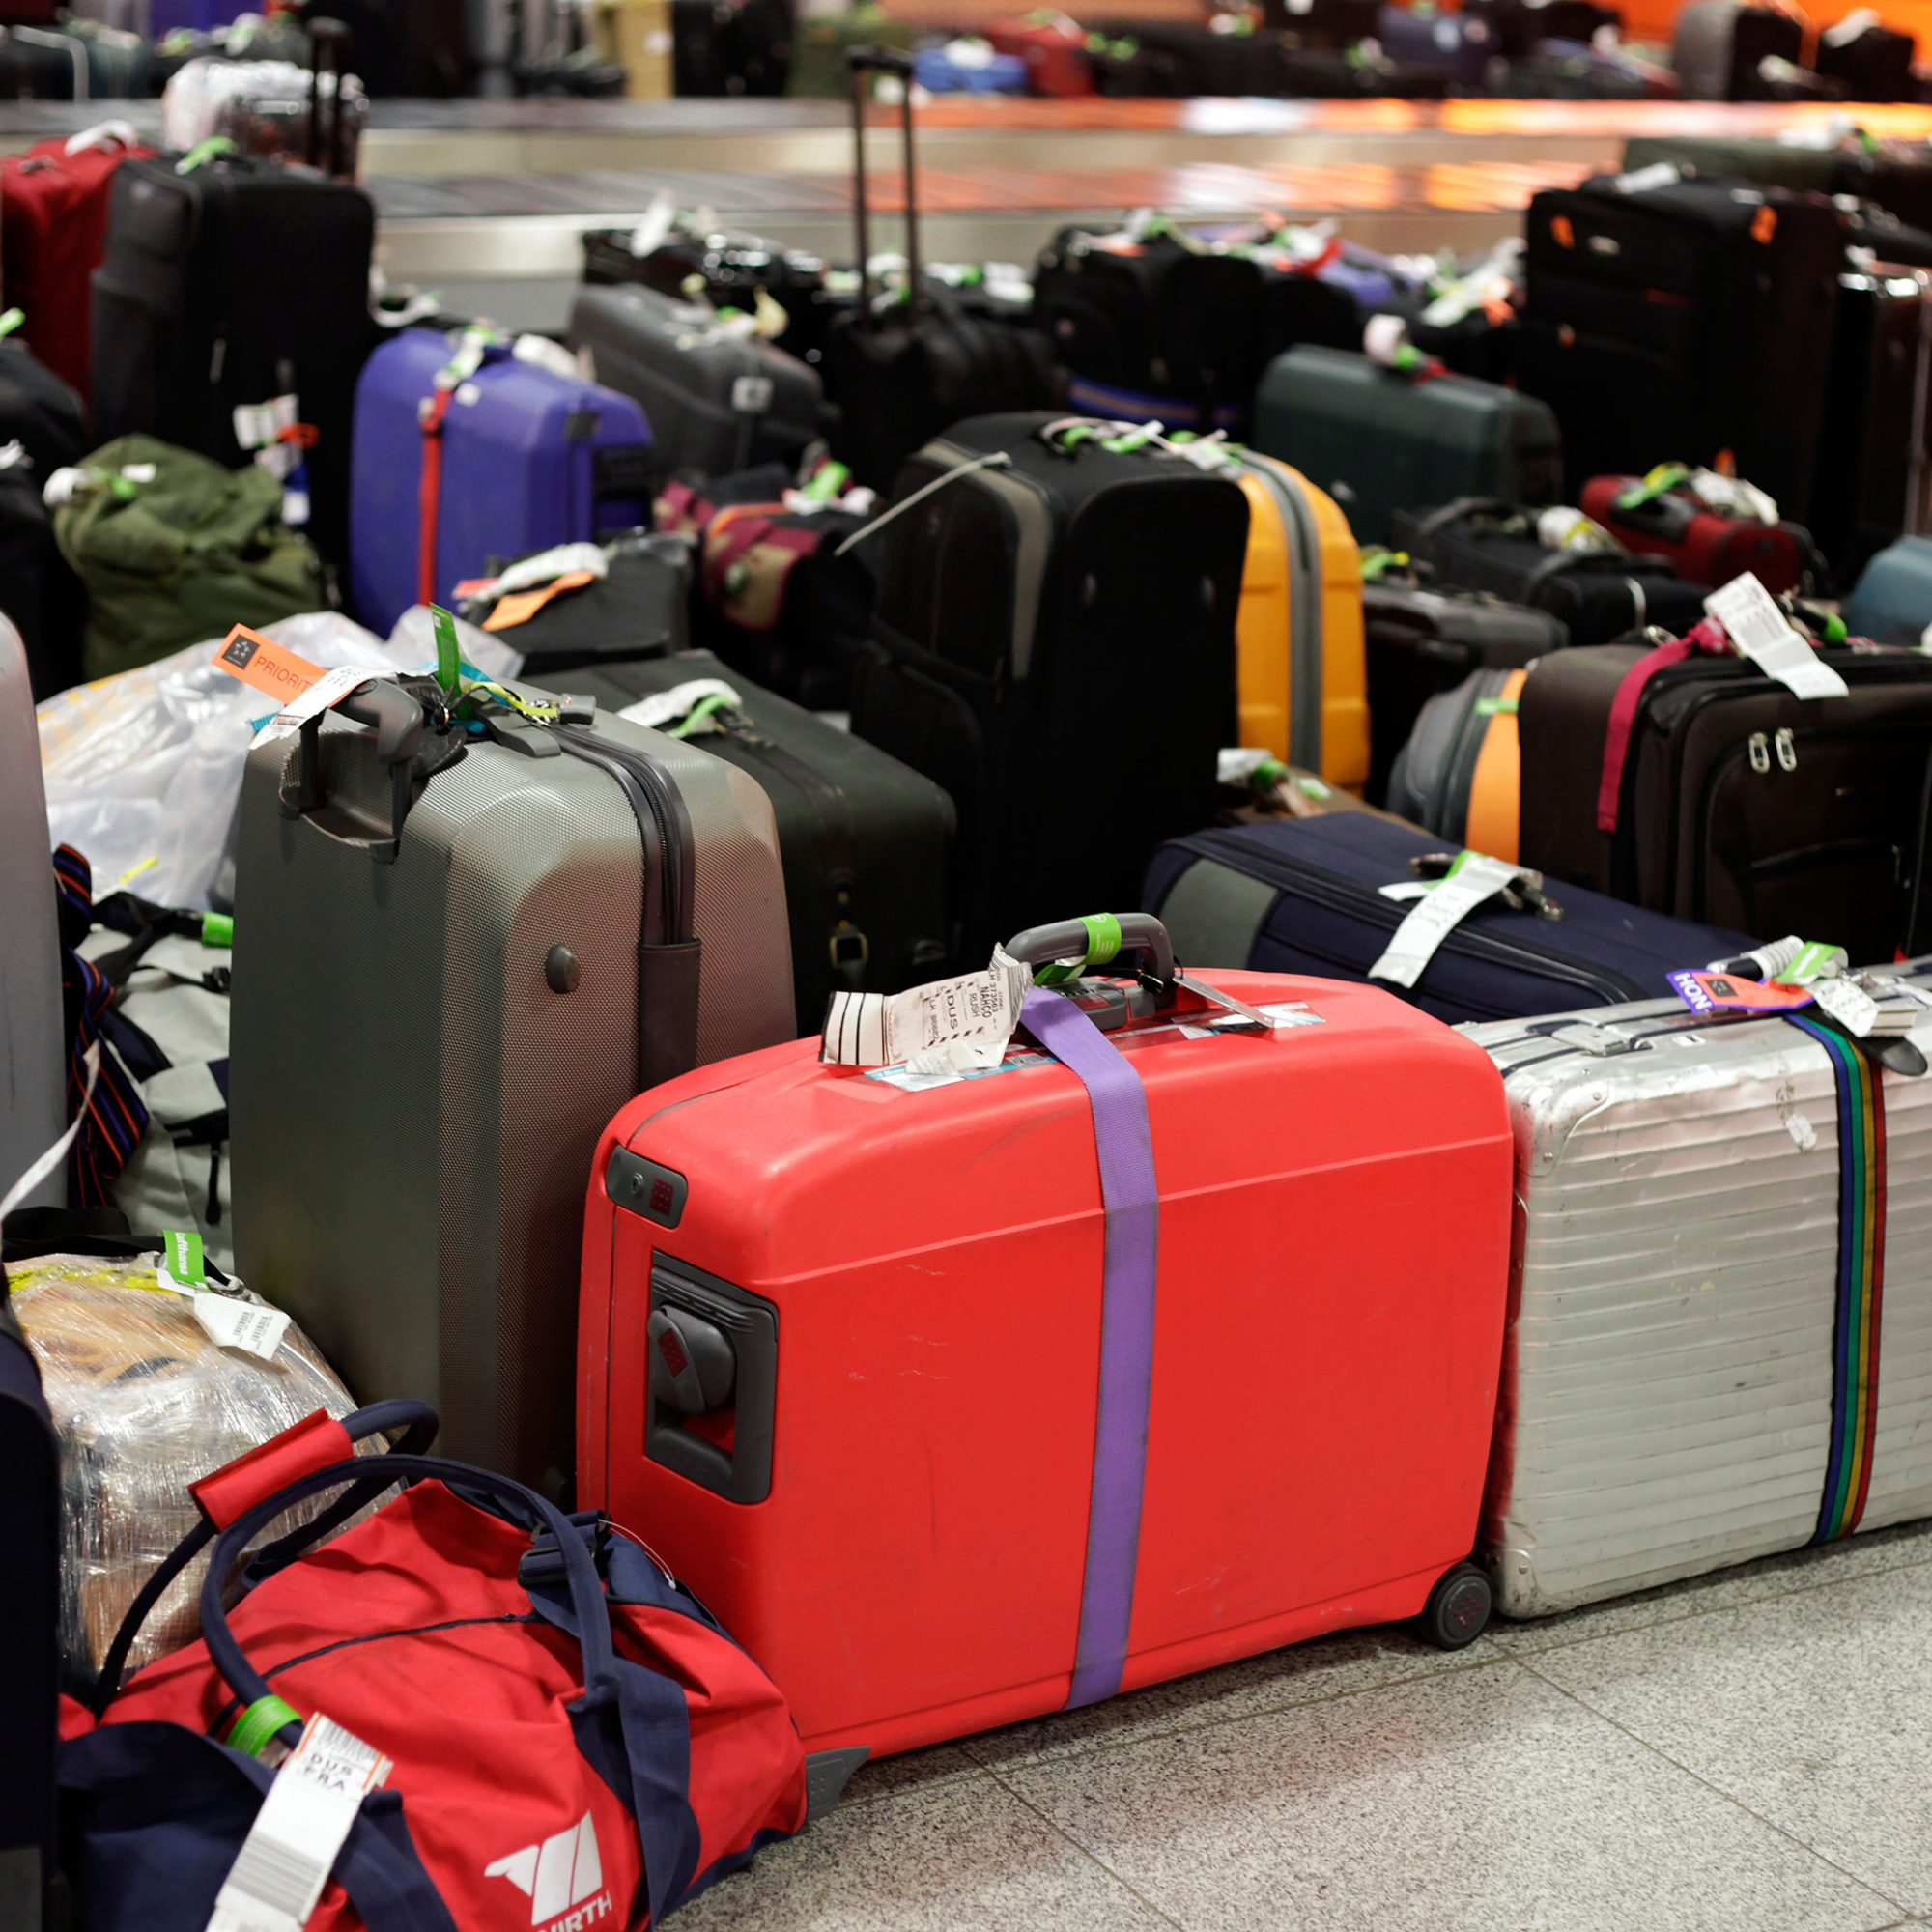 FWX STARTUP TO RENT YOUR SUITCASE